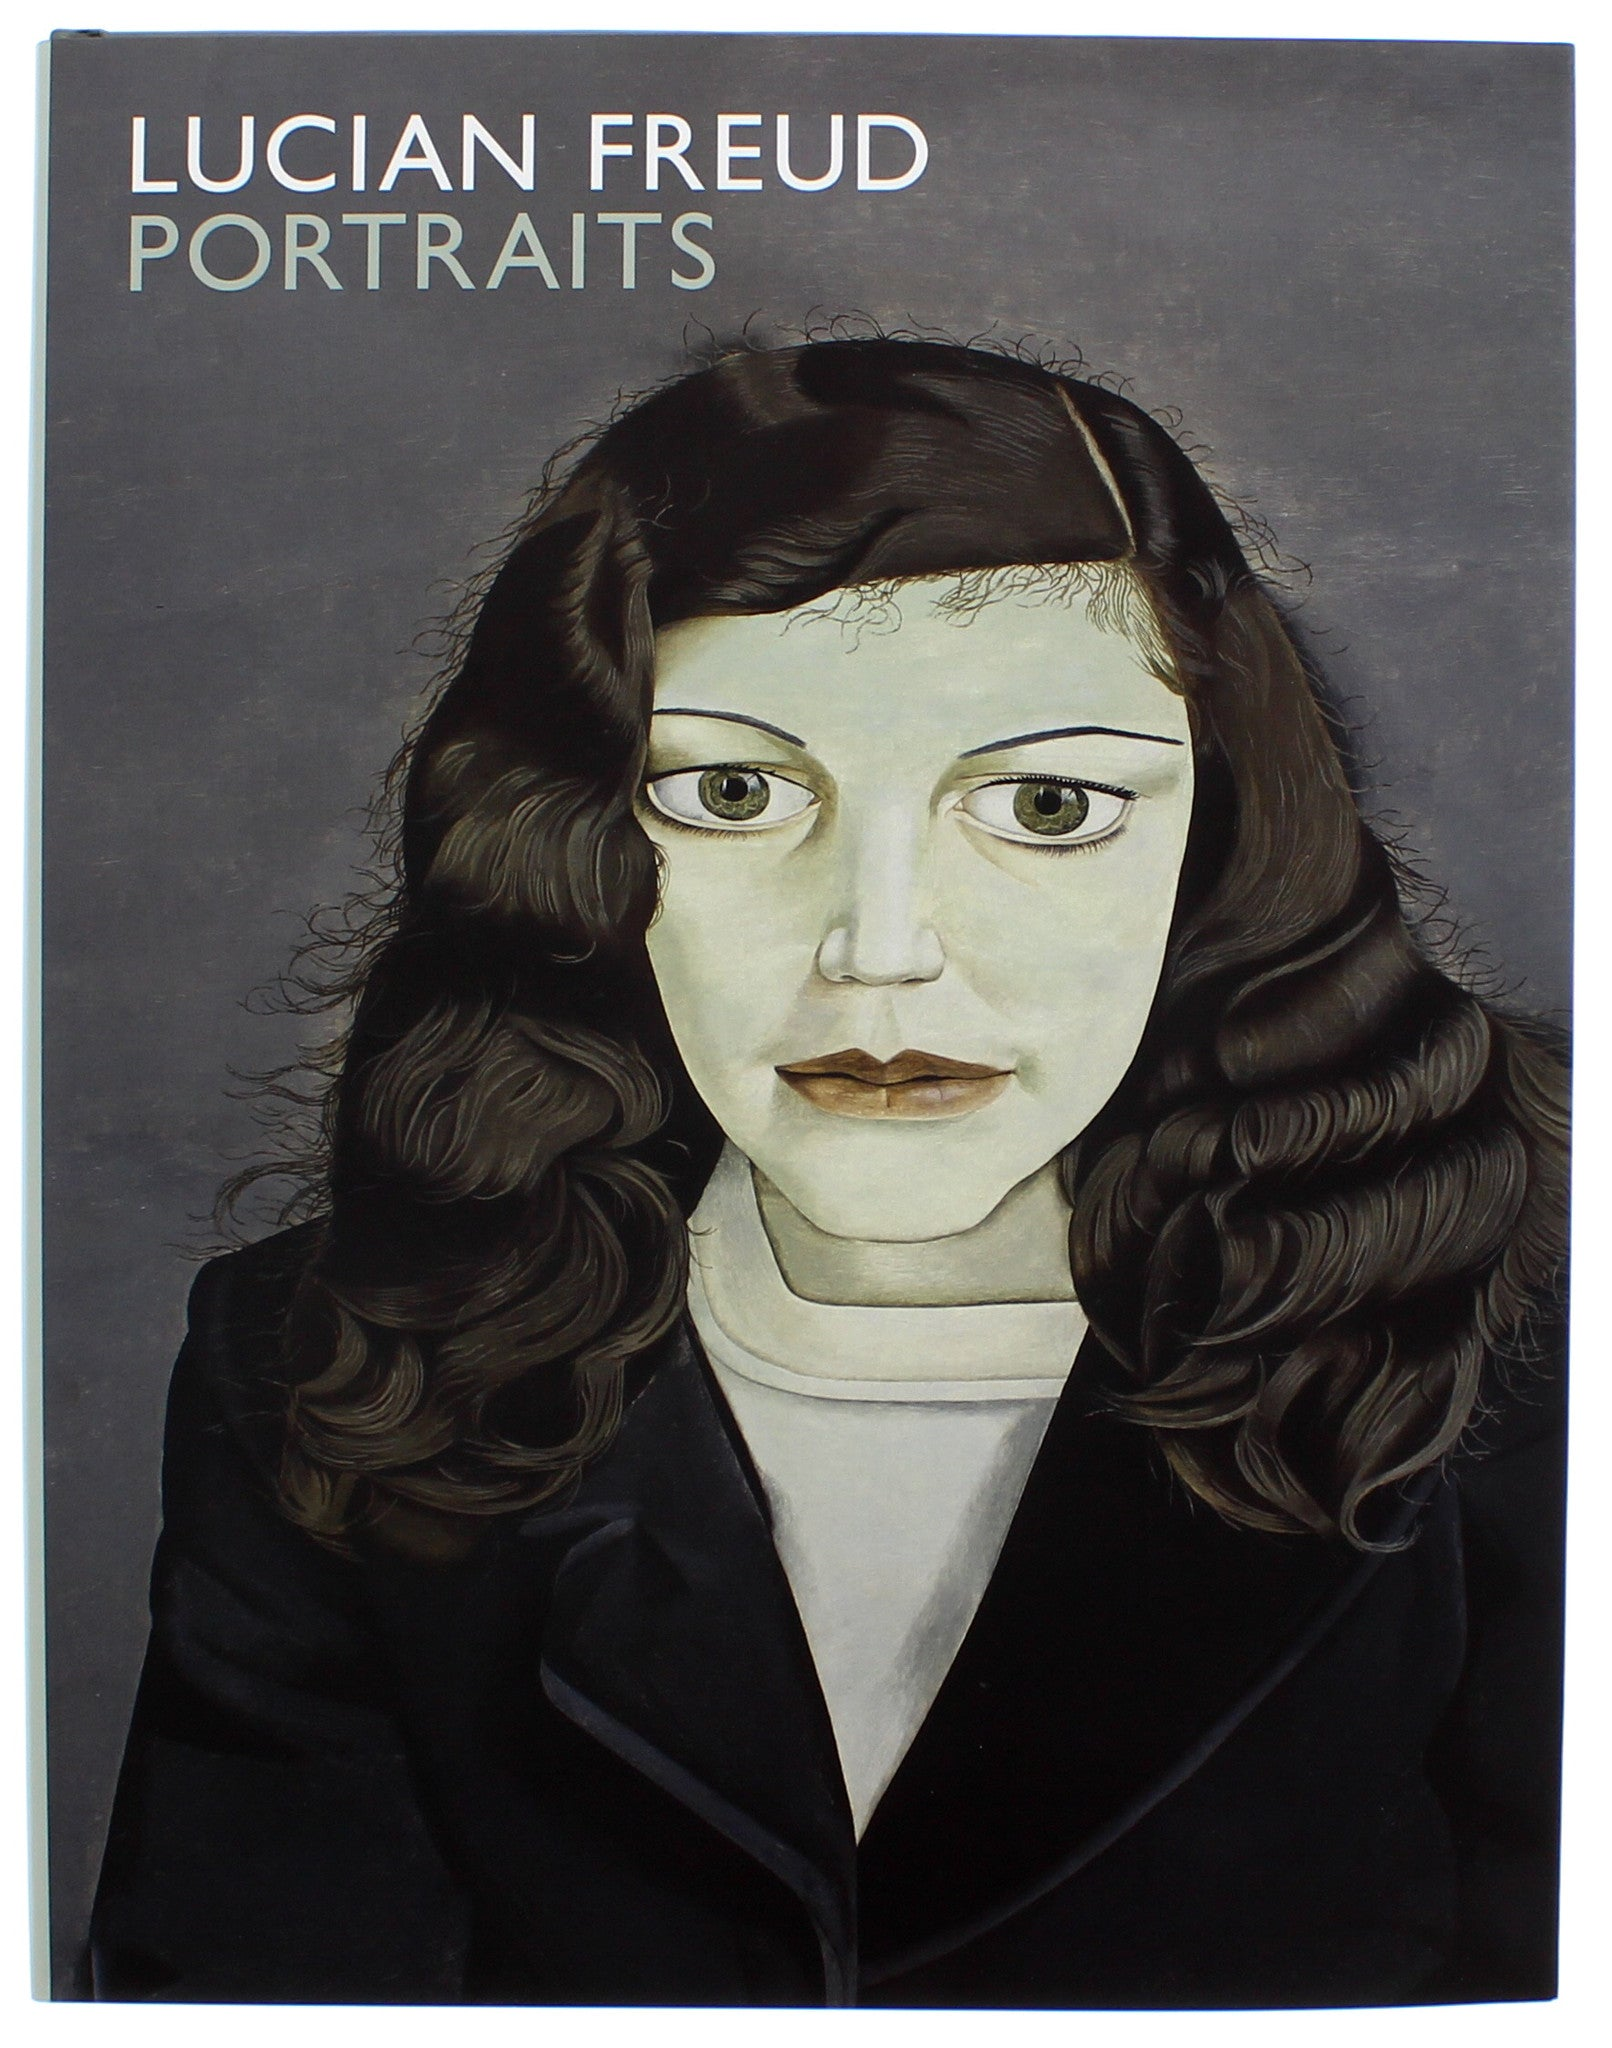 Lucian Freud Portraits Hardcover